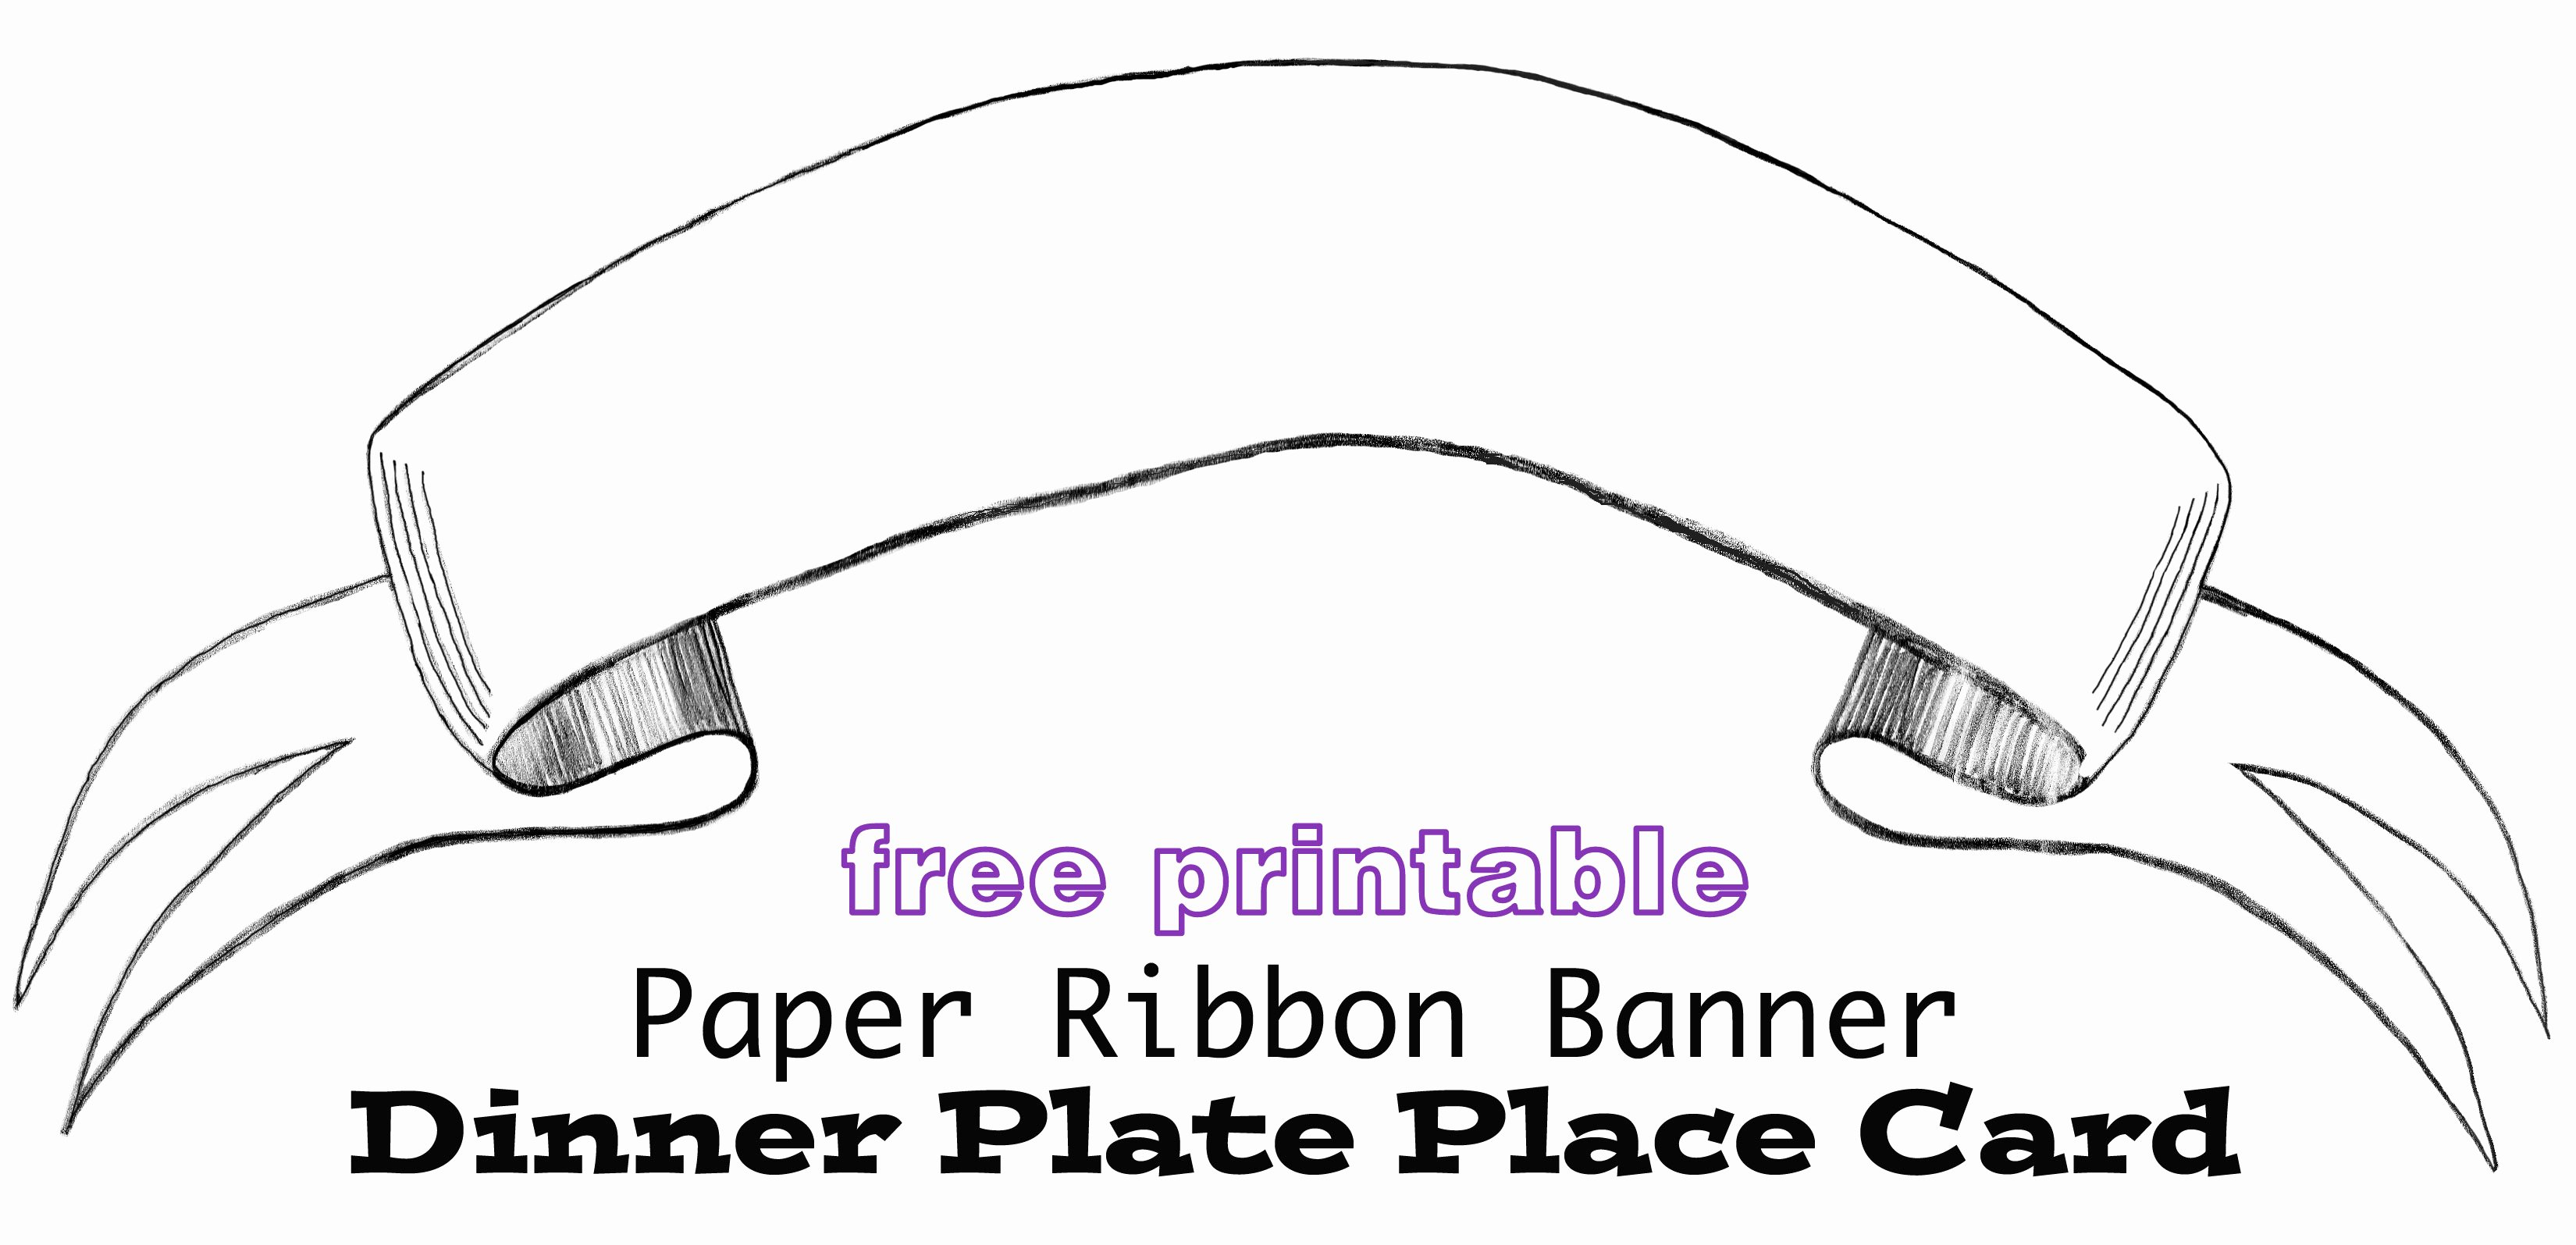 Printable Banner Templates Awesome Printable Paper Banner Dinner Plate Place Card In My Own